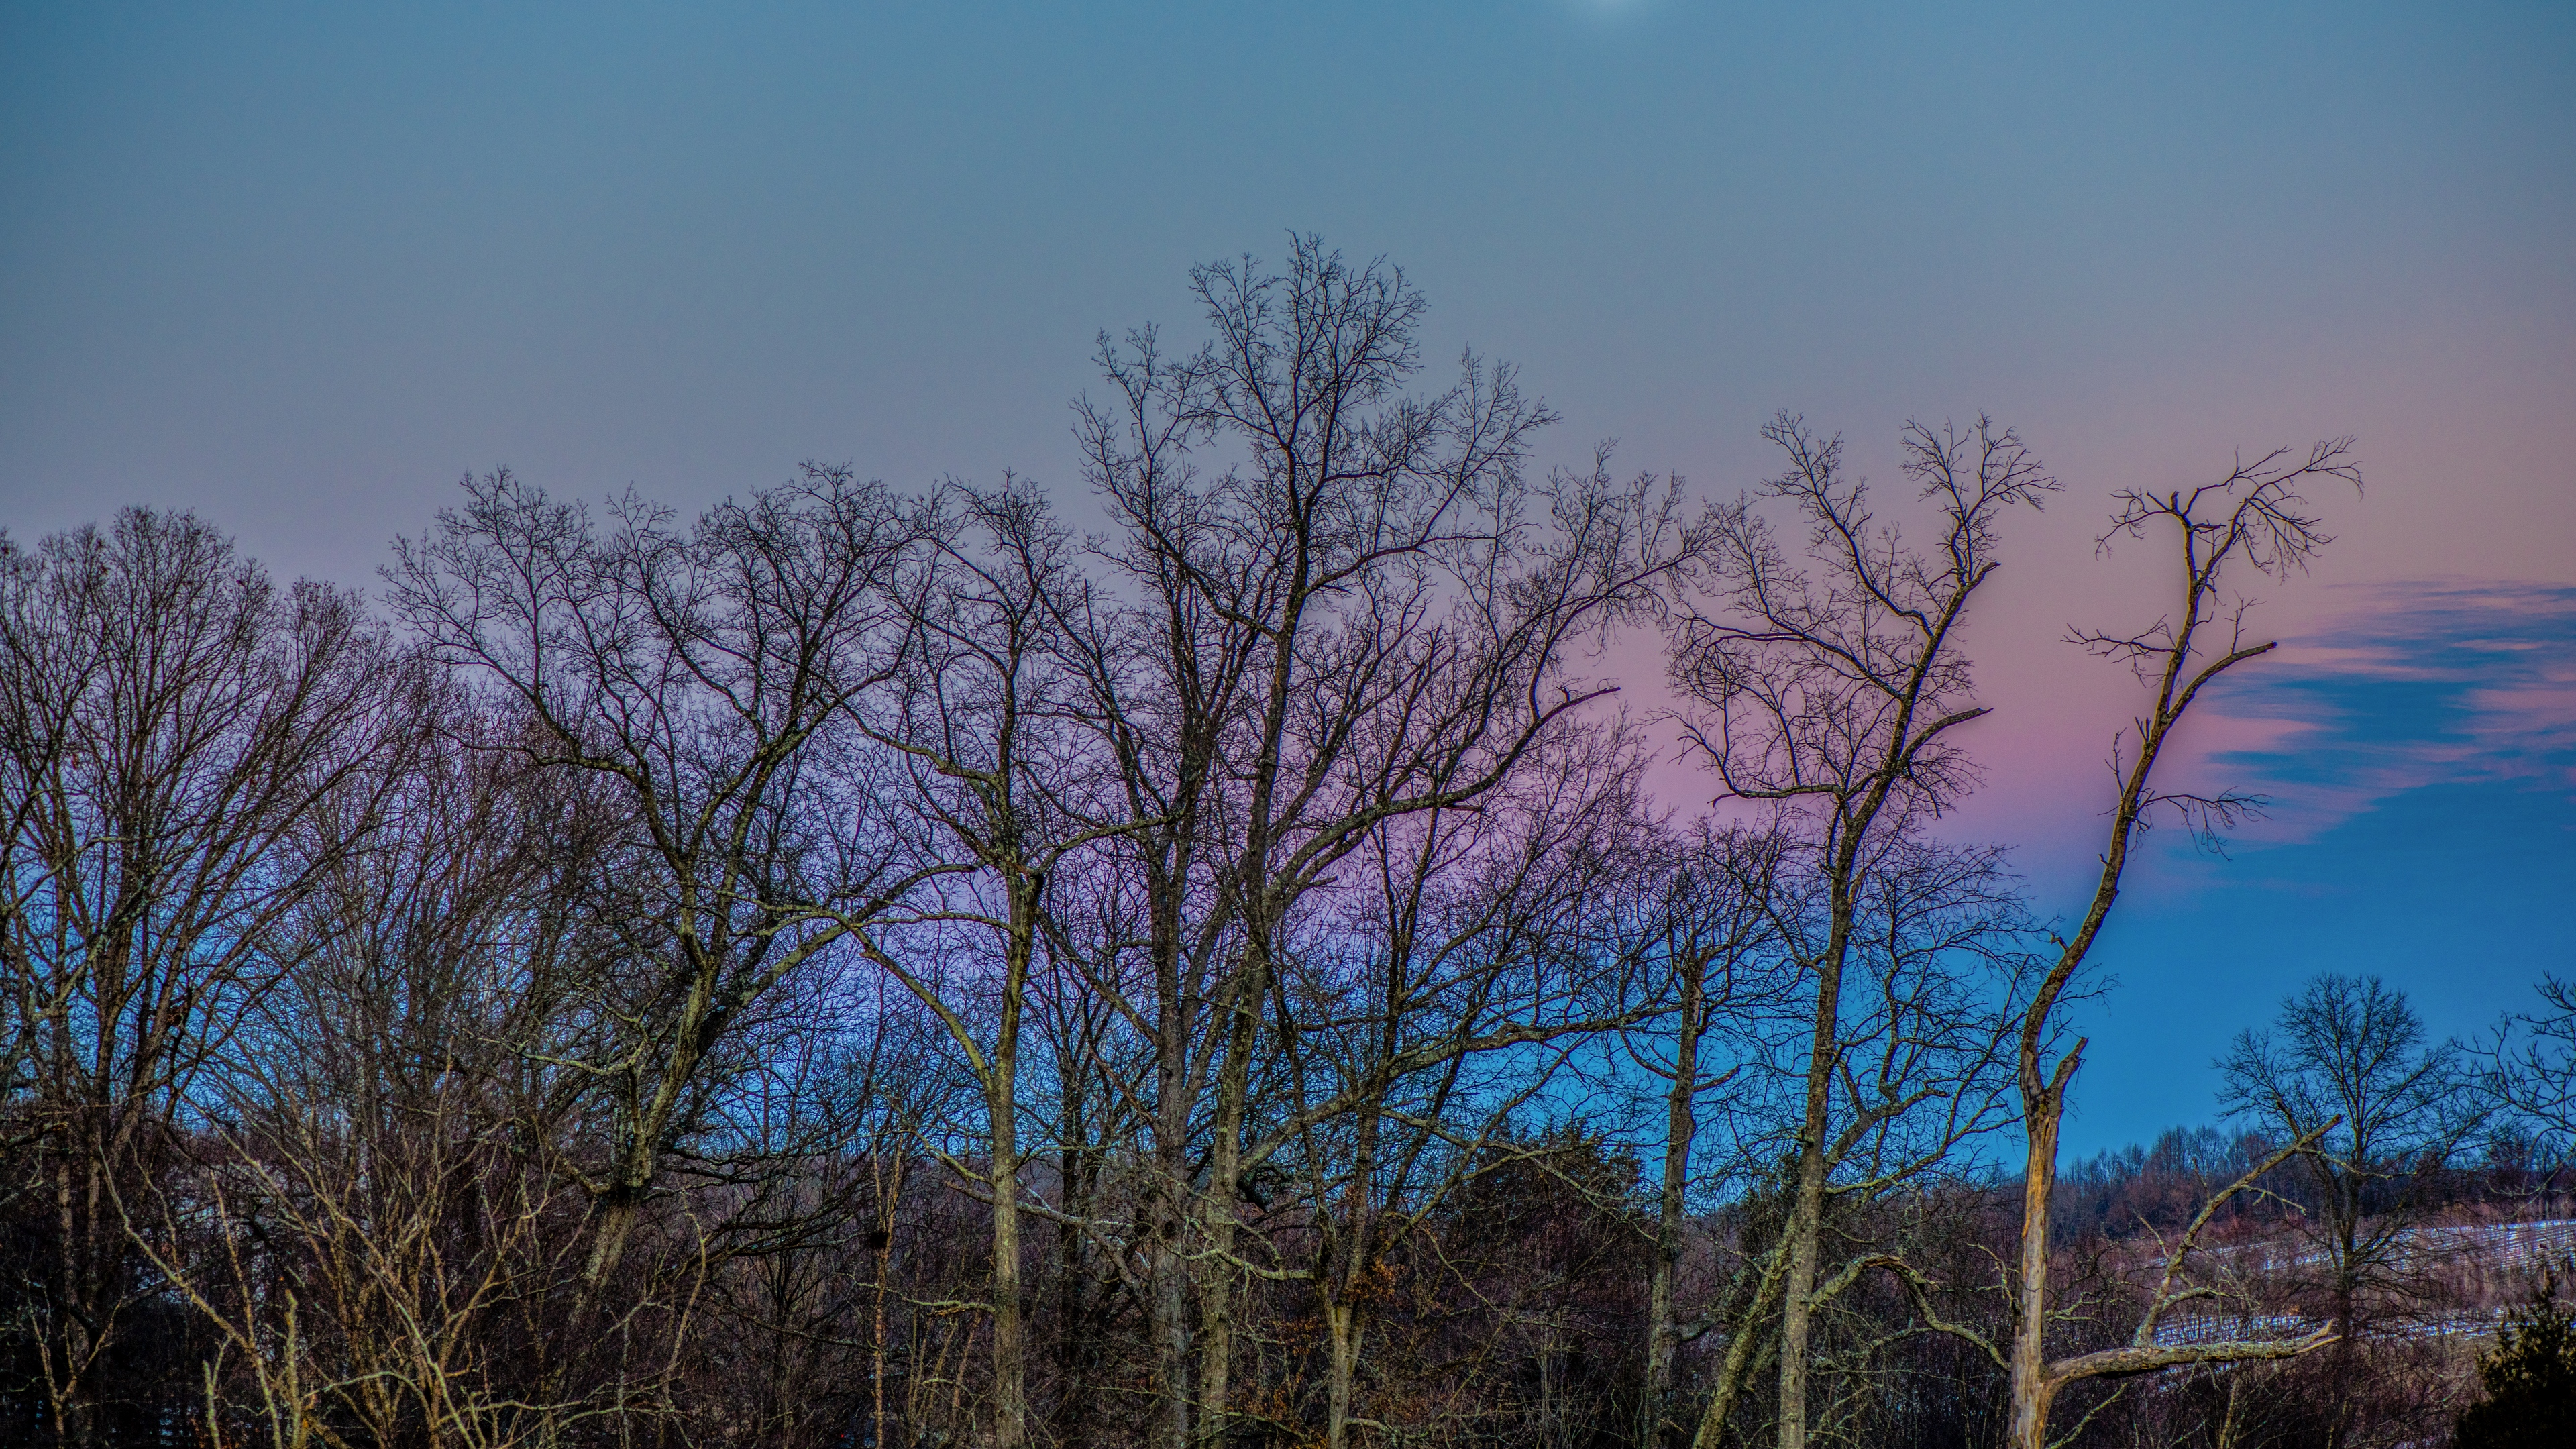 trees sky moon branches 4k 1541117393 - trees, sky, moon, branches 4k - Trees, Sky, Moon